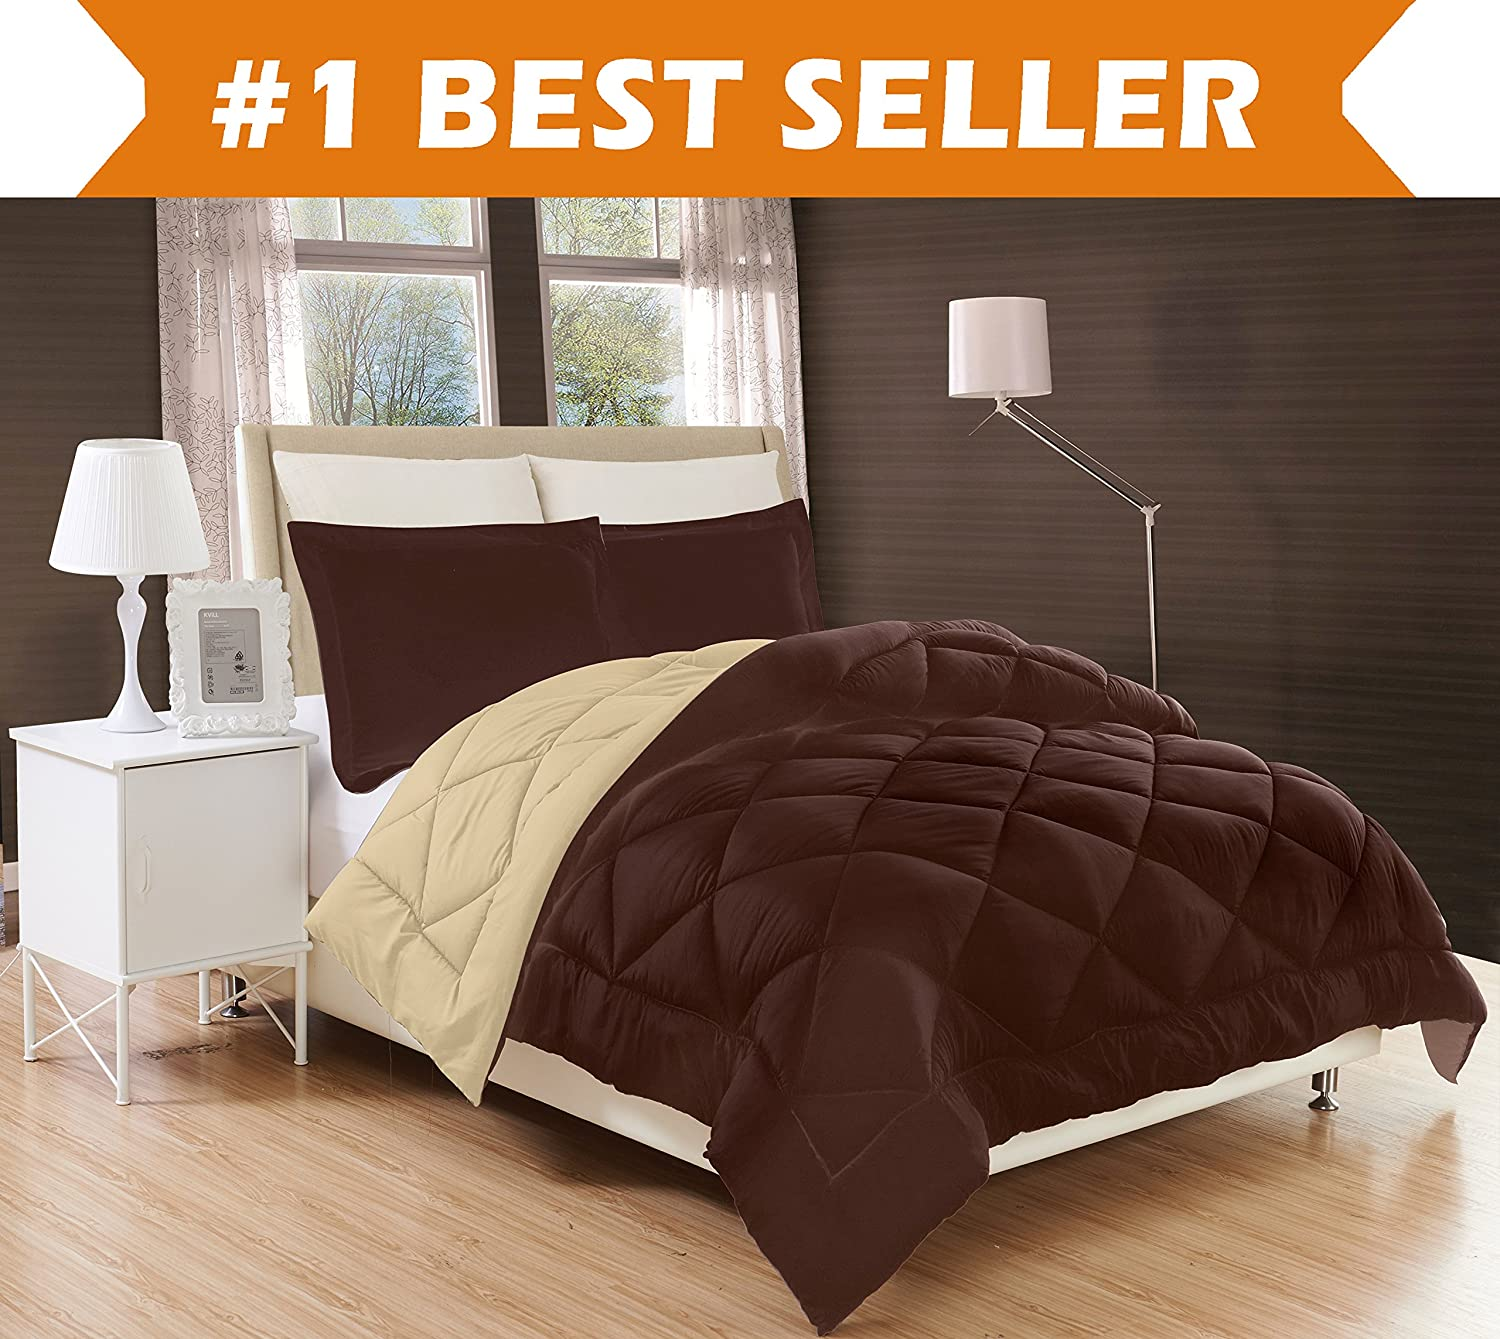 Reversible 3-Piece Comforter Set, Full/Queen, Chocolate Brown/Cream